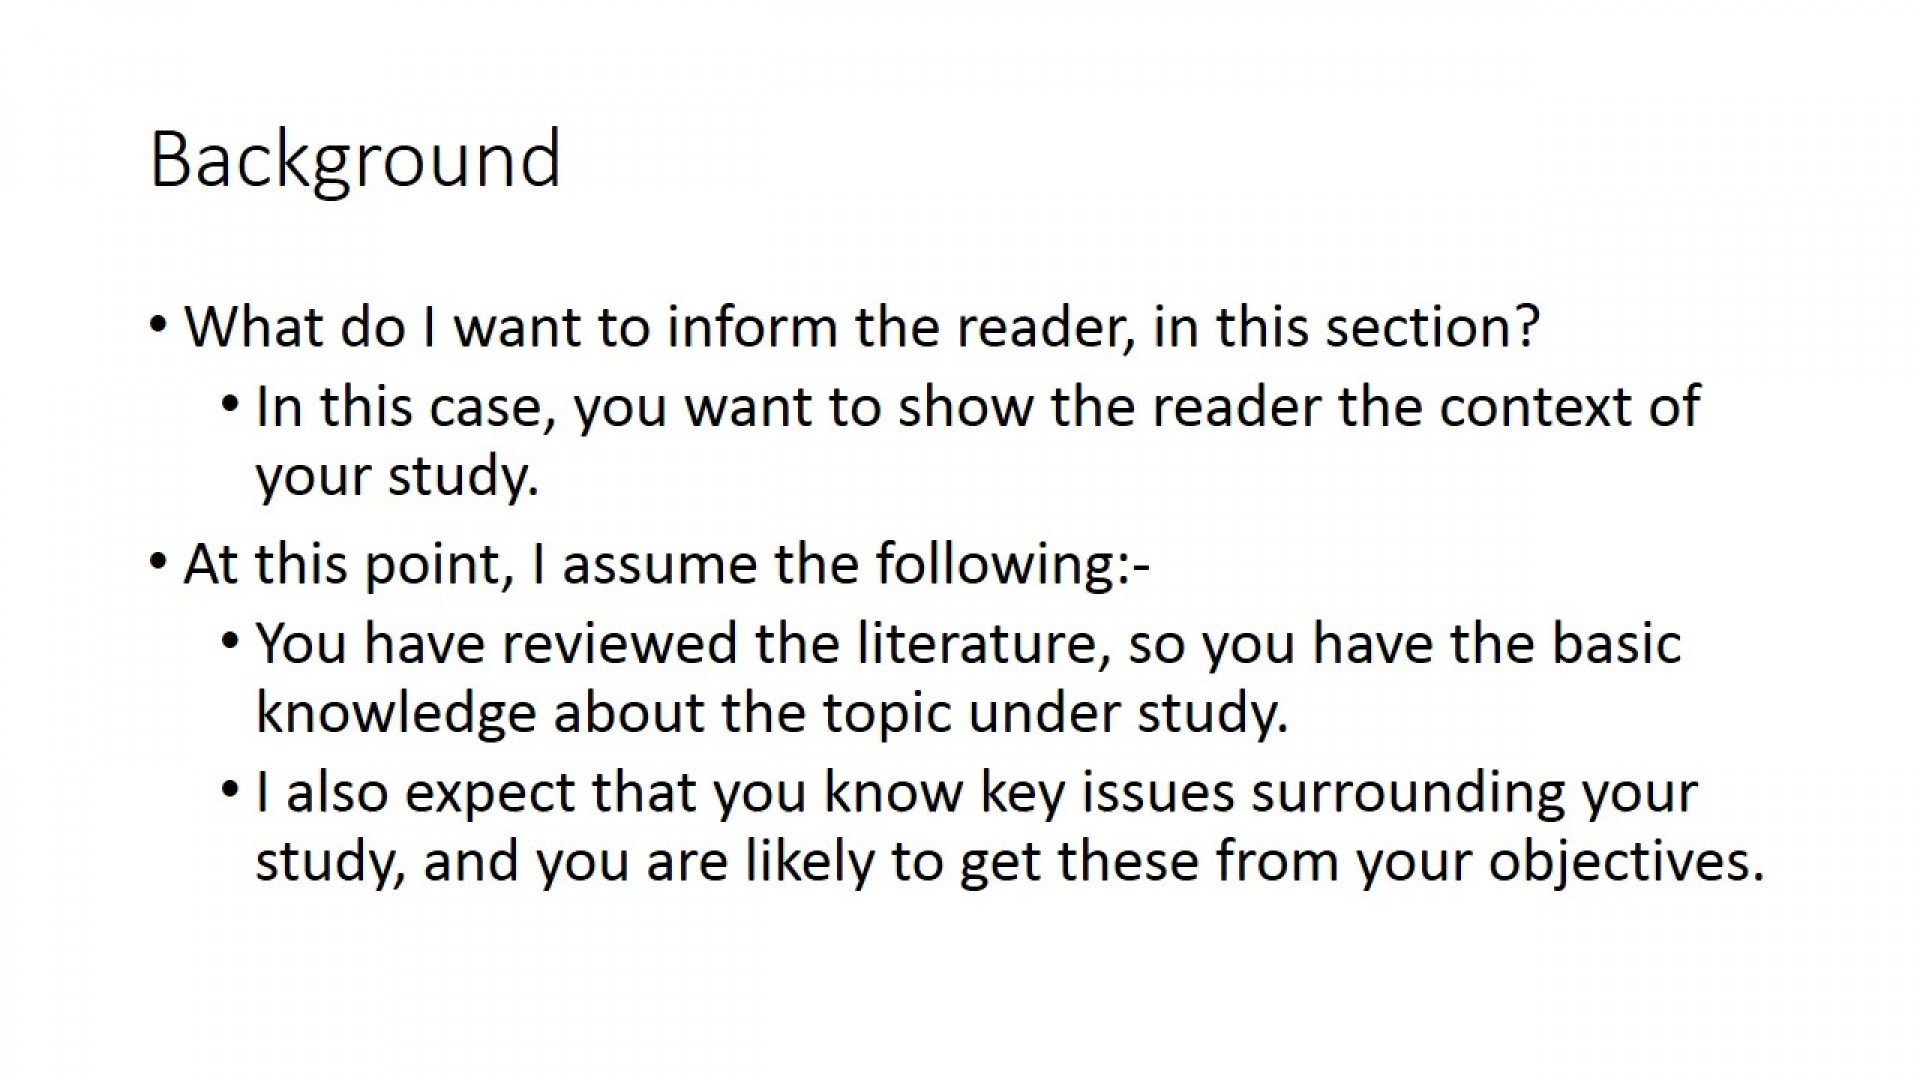 001 Background Of The Study Research Paper Sample Dreaded Objectives Significance In Pdf 1920